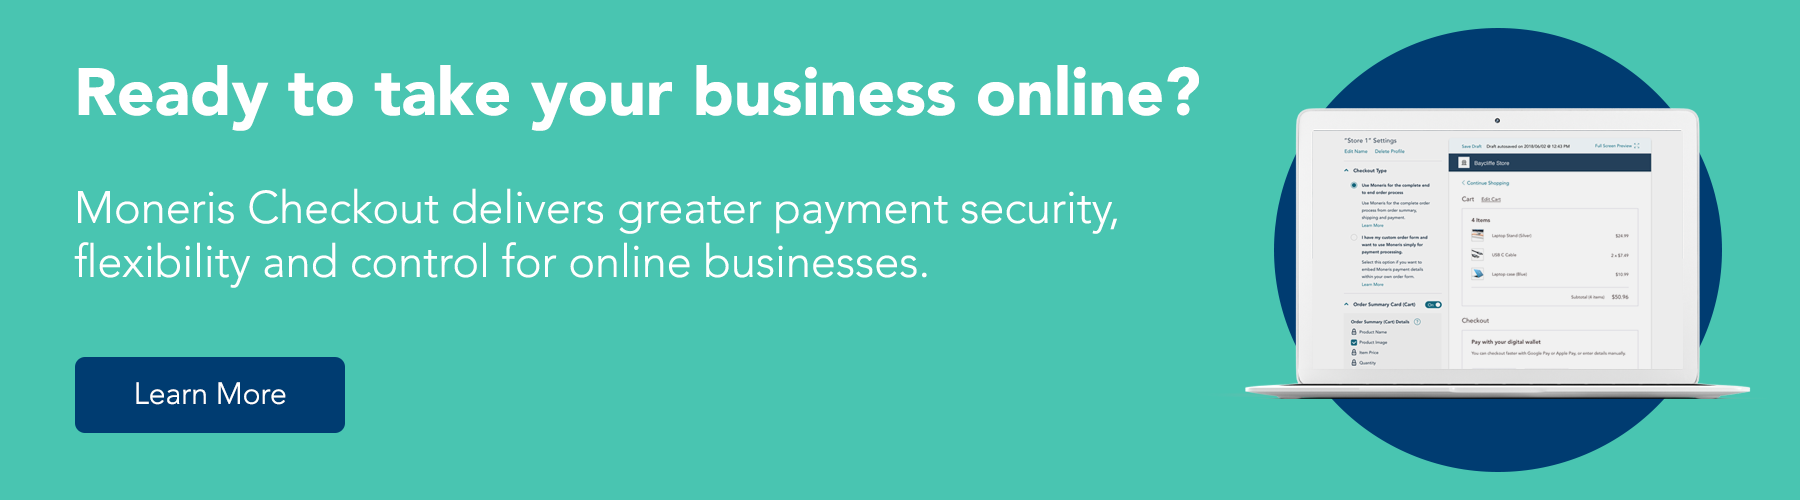 Ready to take your business online? Moneris Checkout delivers greater payment security, flexibility, and control for online businesses. Learn more.